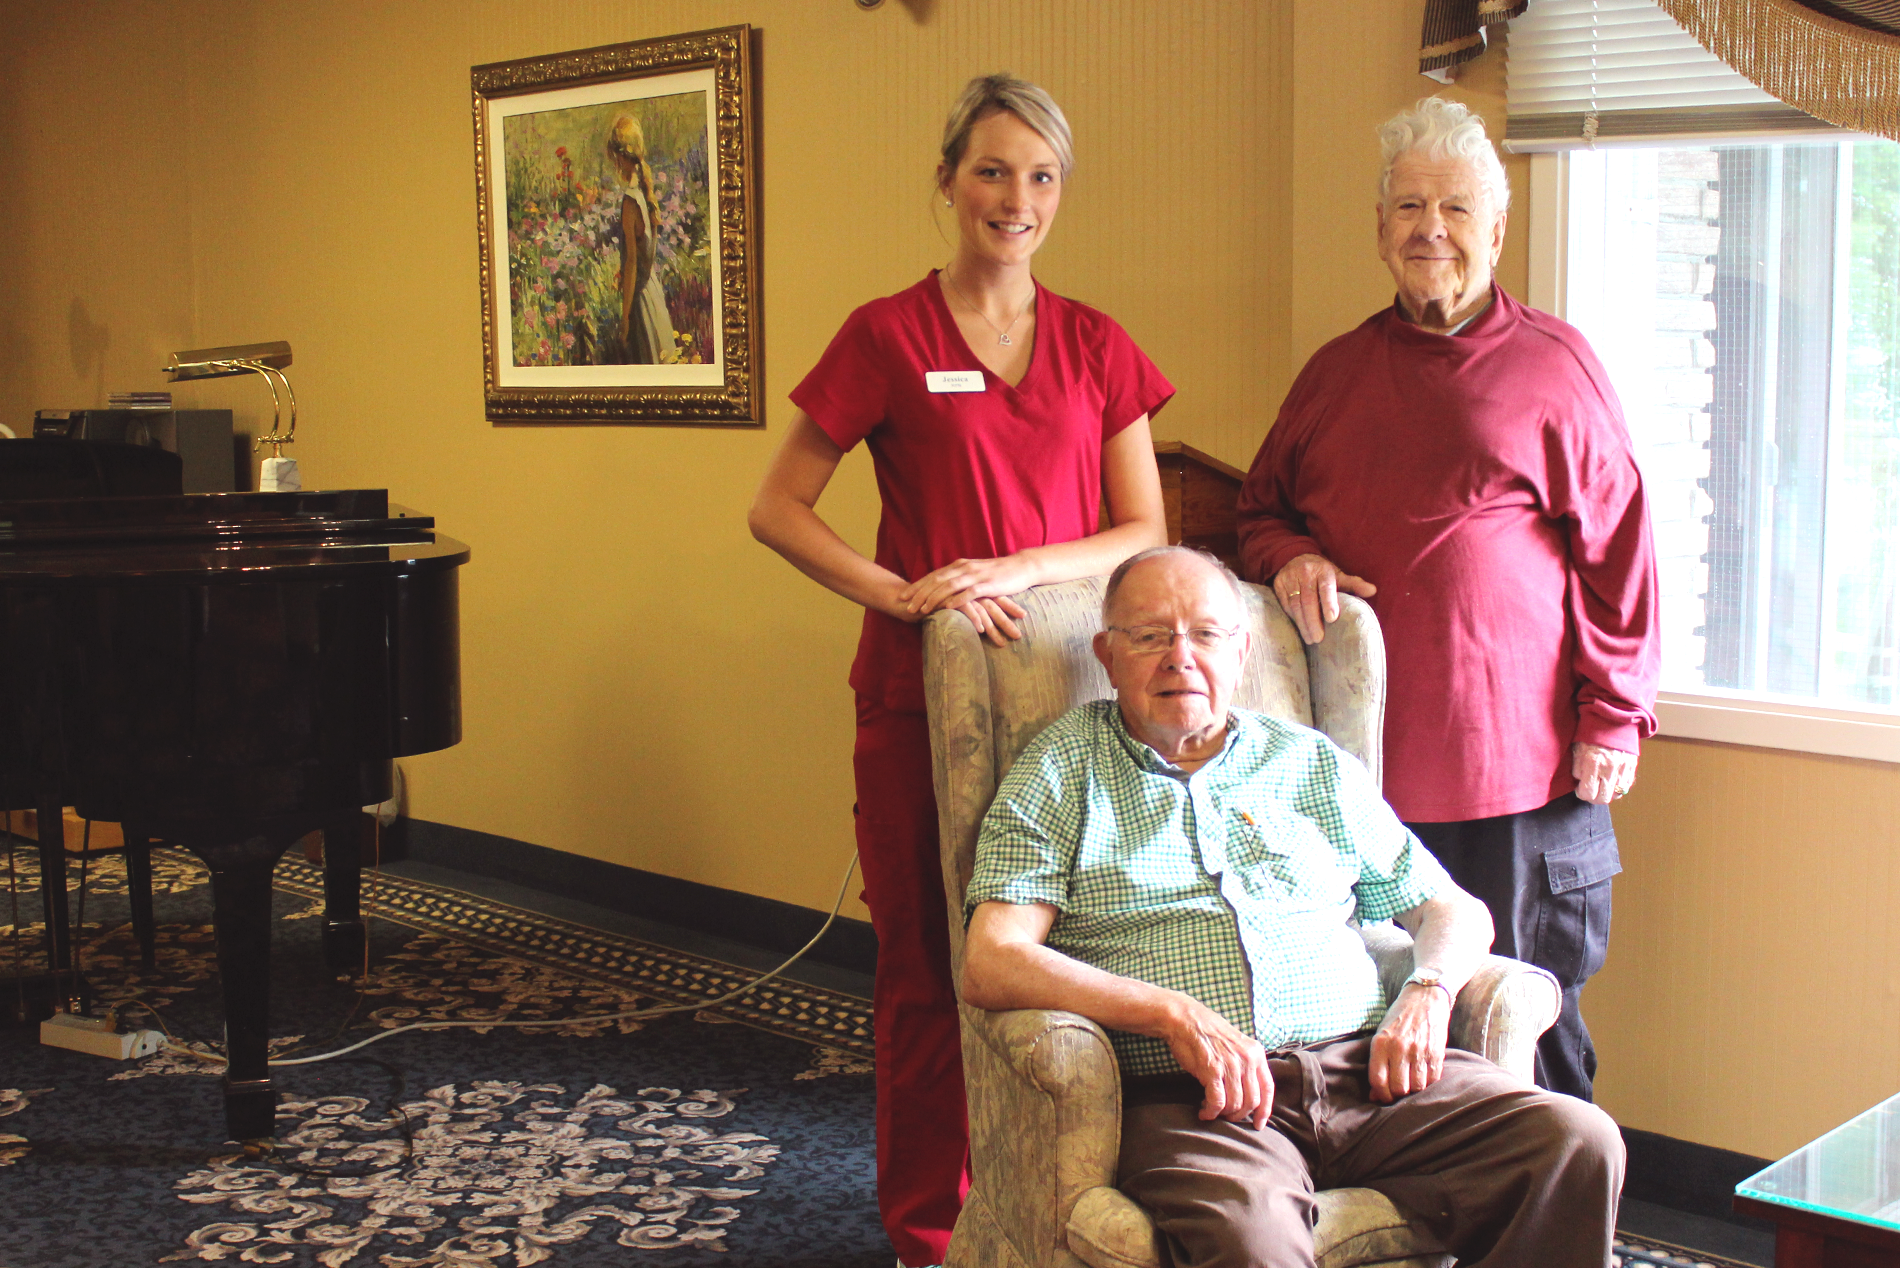 Residents and Nurse.